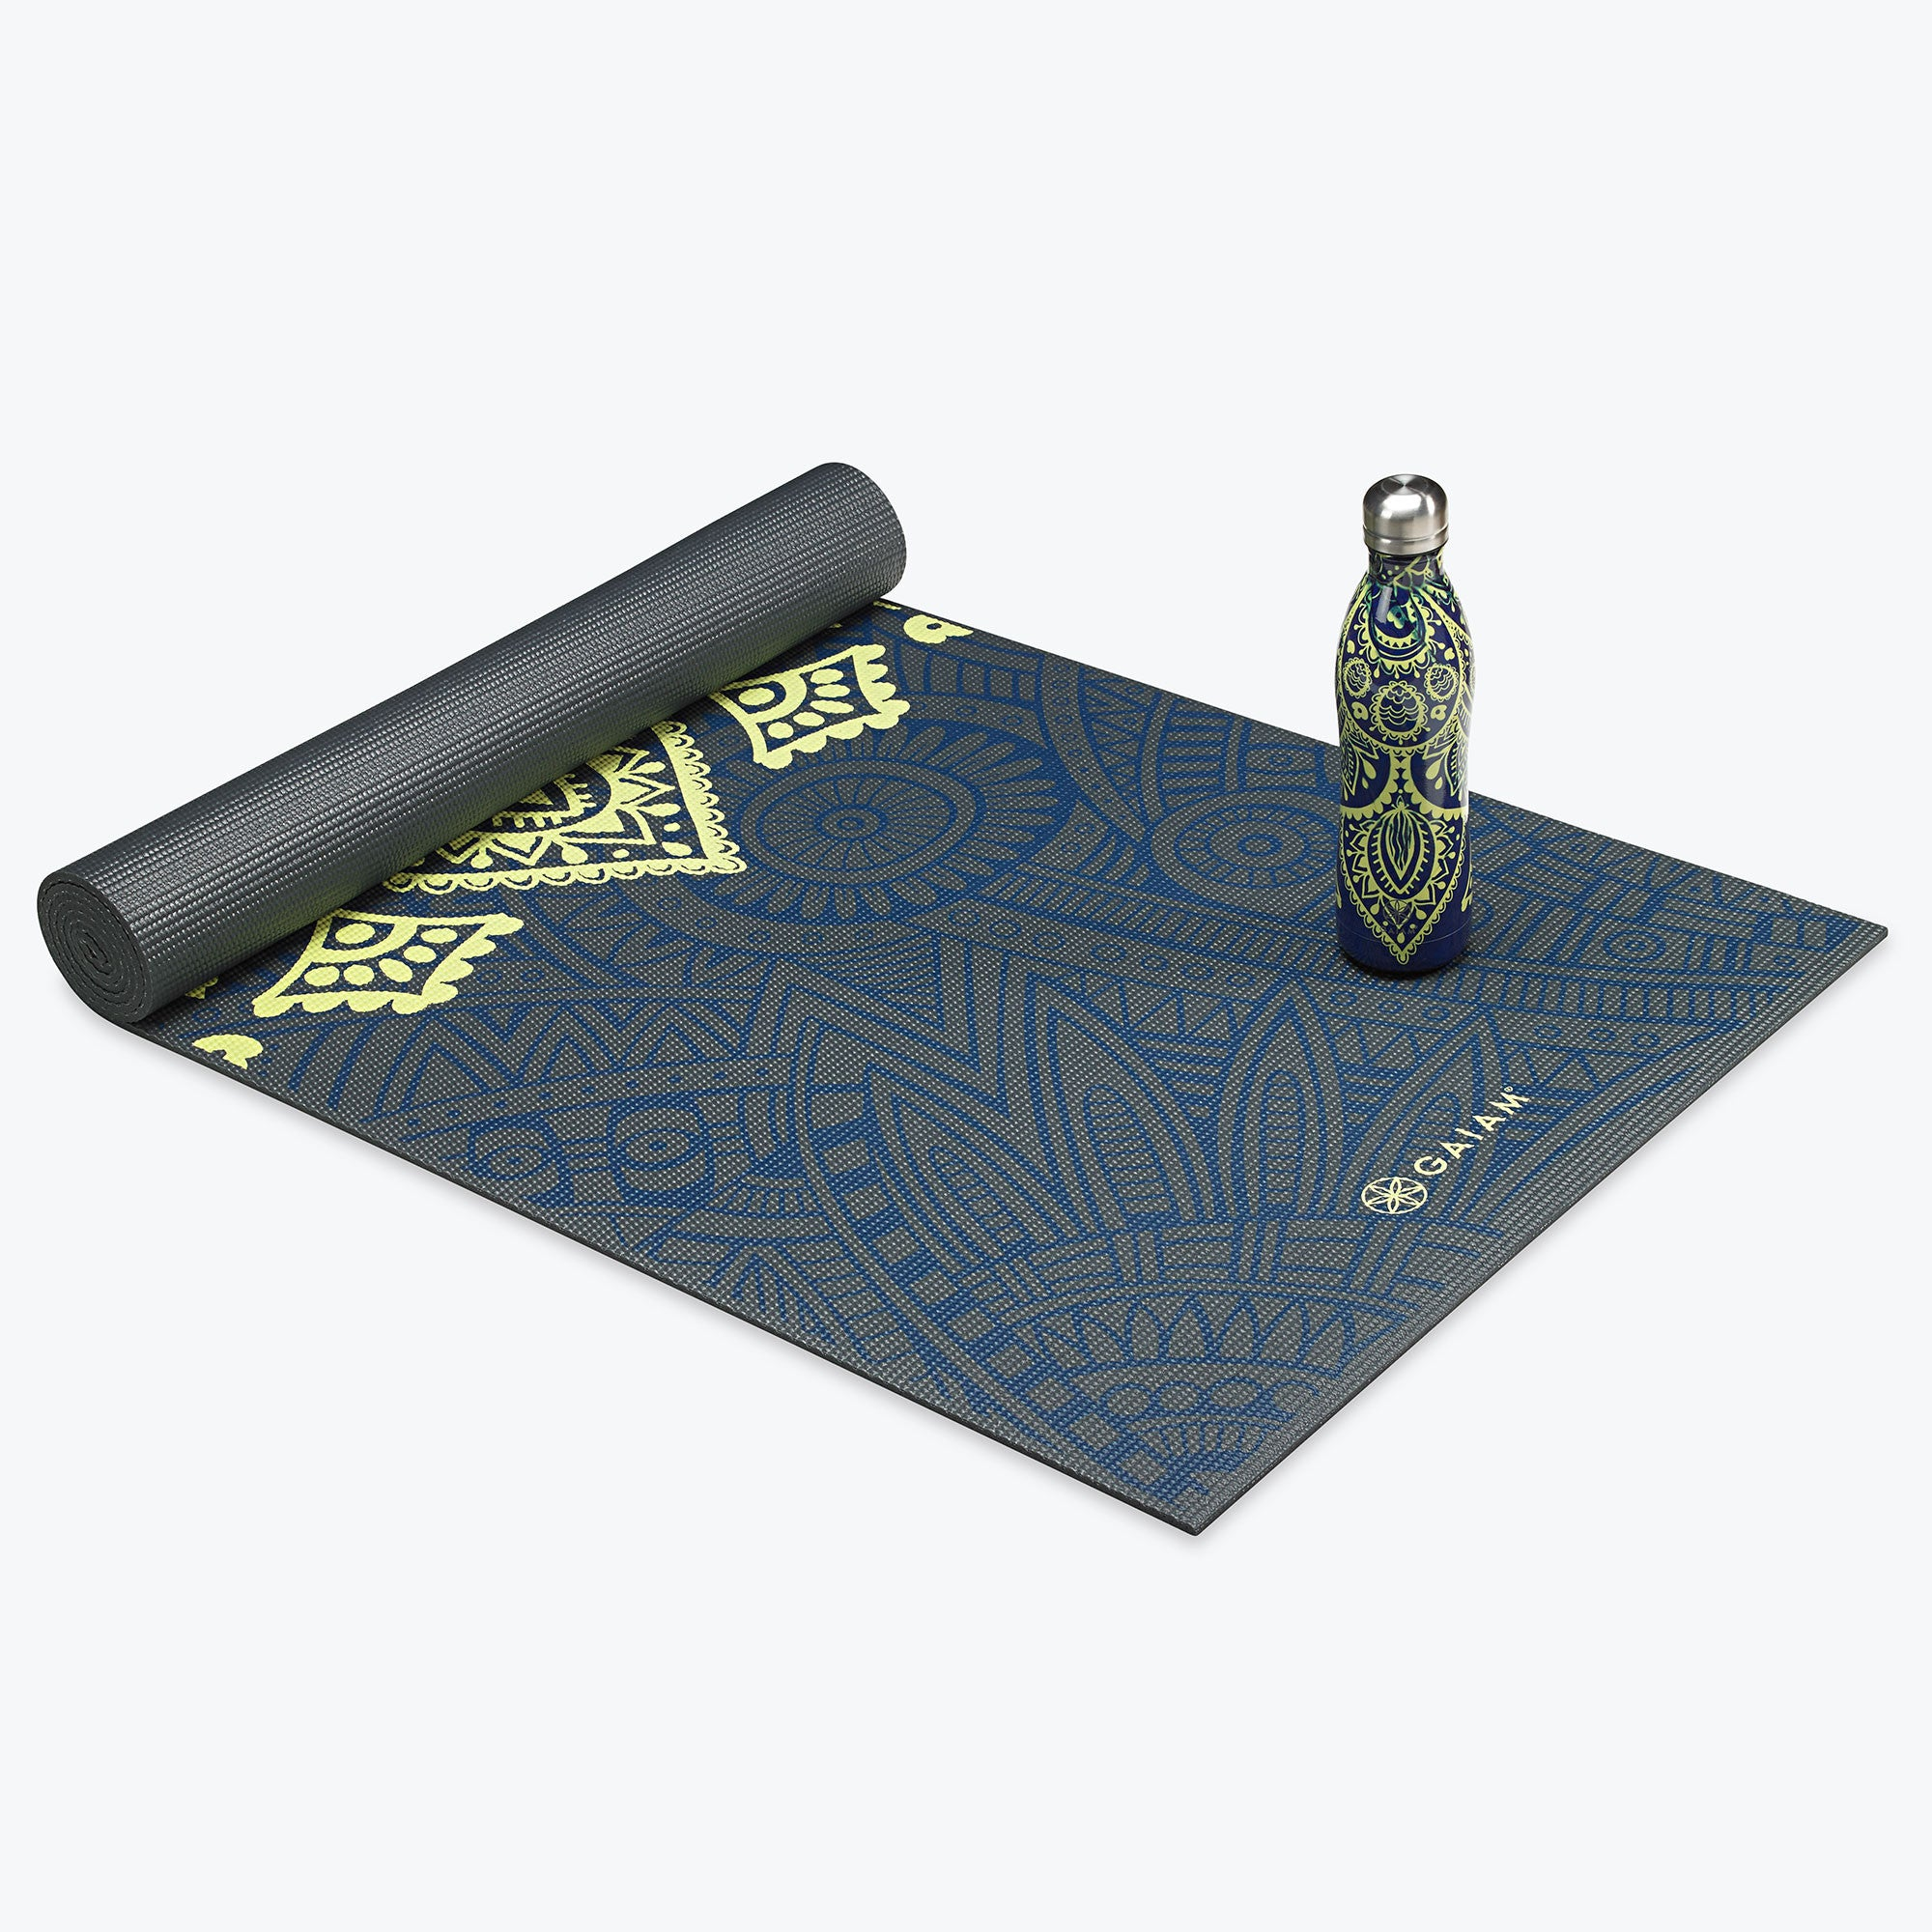 Image of Keep Your Cool Yoga Kit